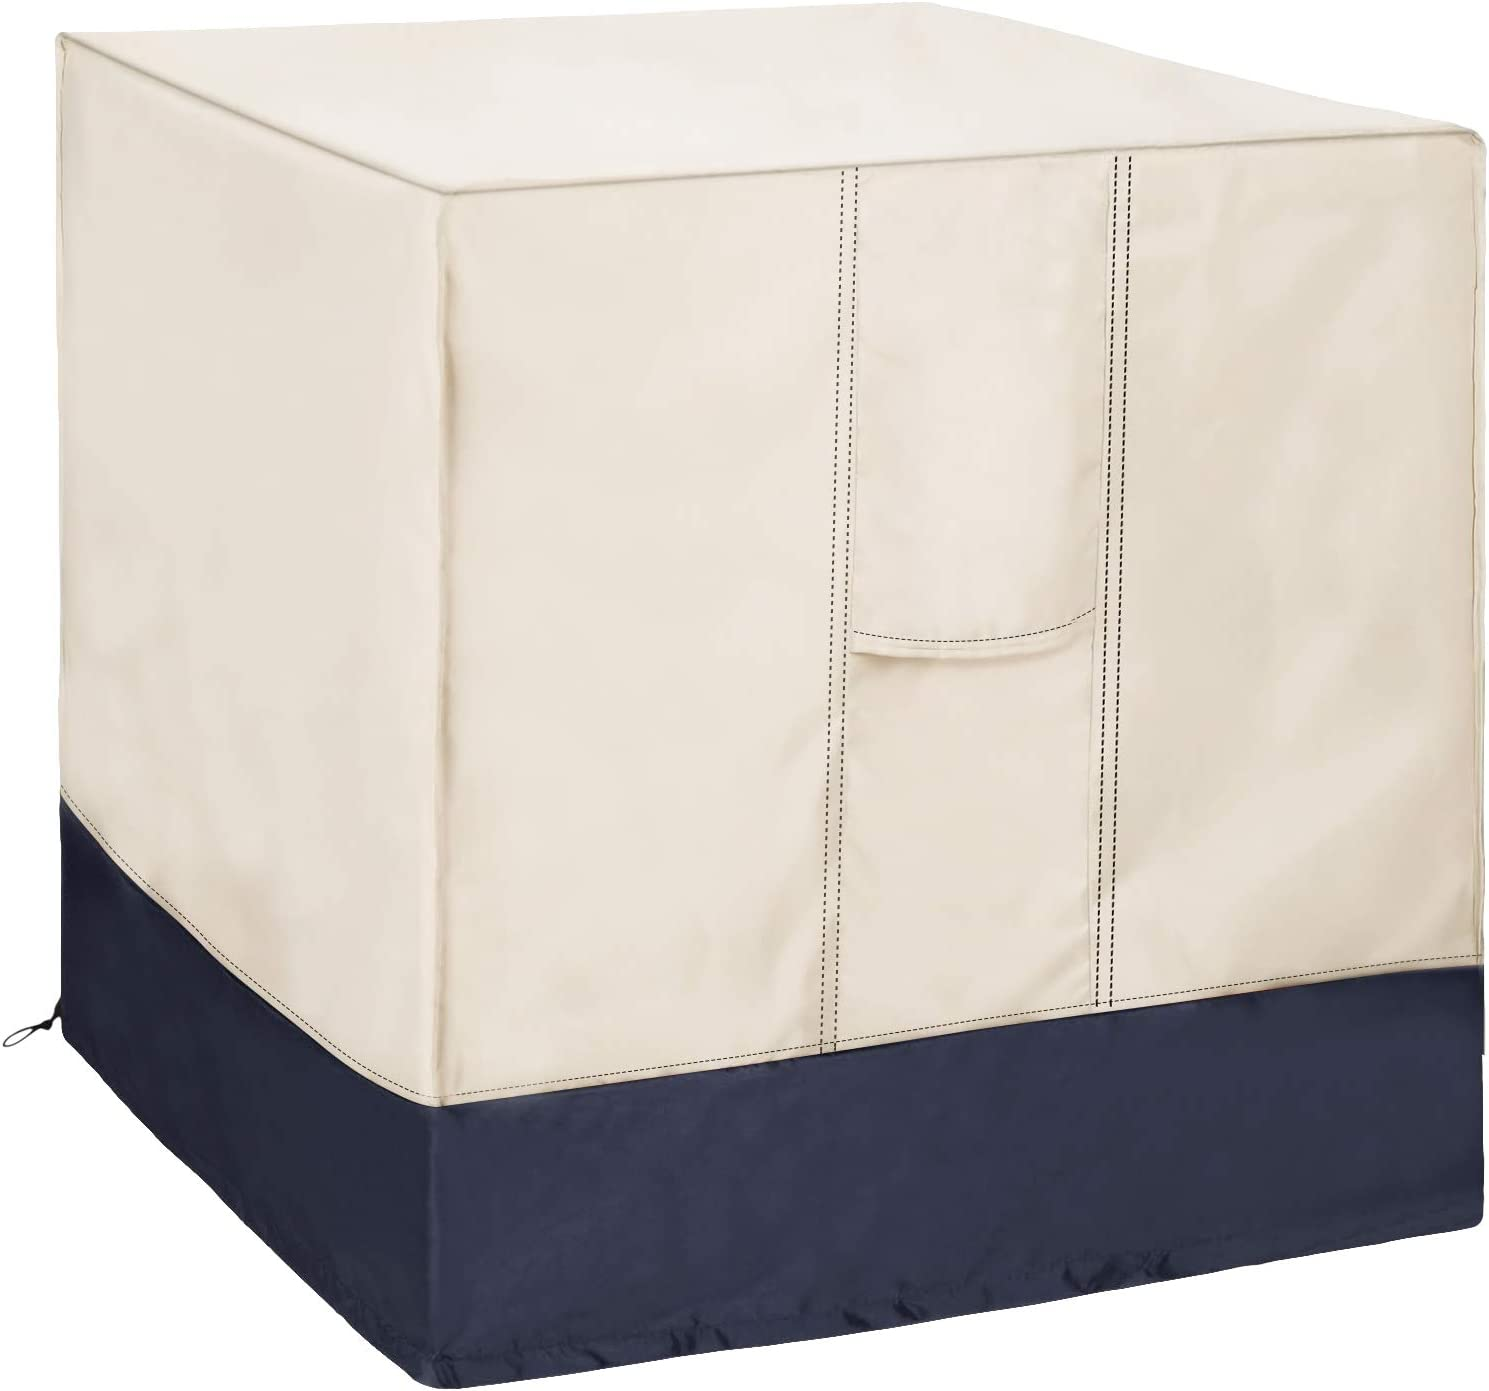 Foozet Air Conditioner Cover for Outside Units, AC Cover for Outdoor Central Unit Square Fits up to 36 x 36 x 39 Inches